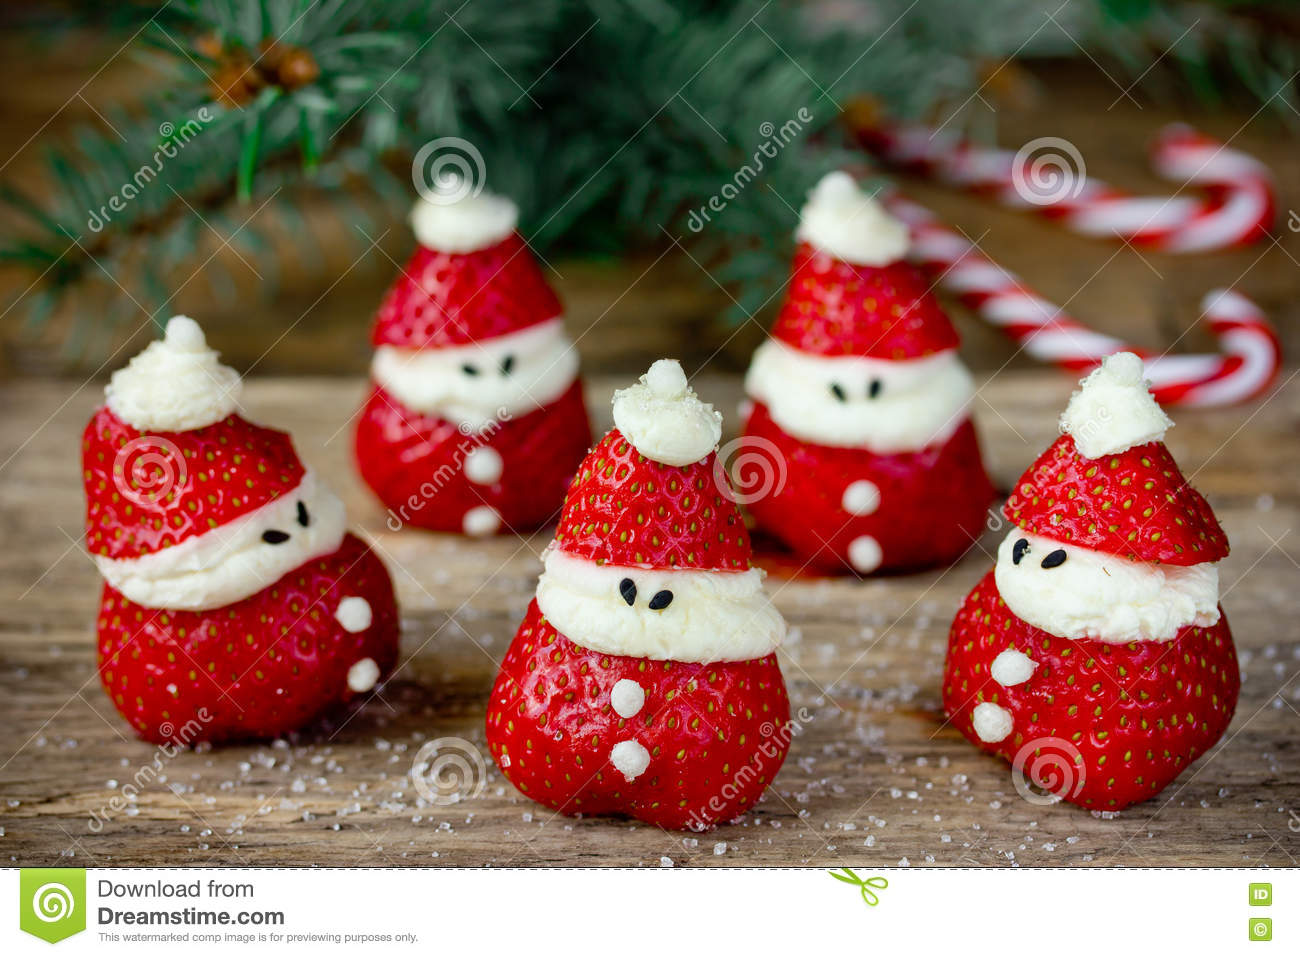 christmas dinner party ideas for kids strawberry santa recipe